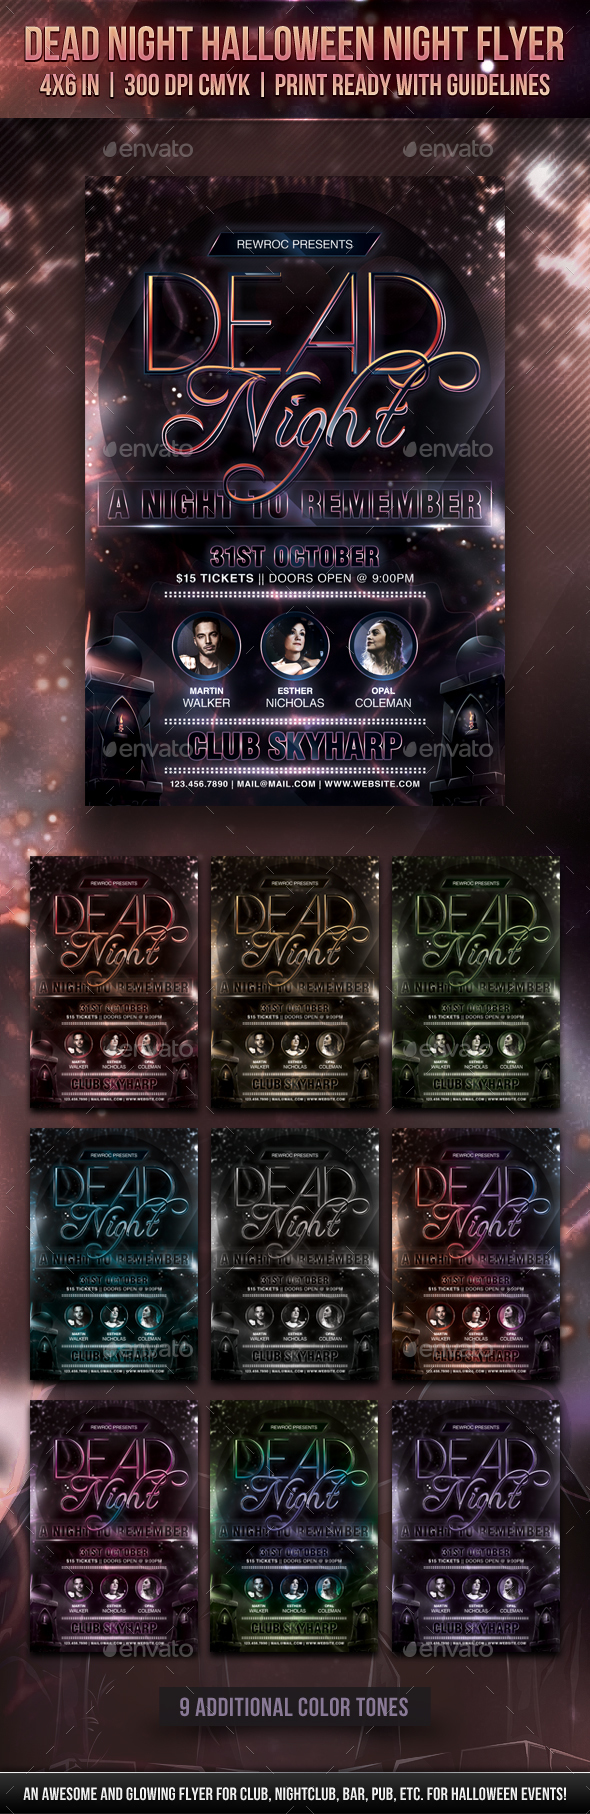 Dead Night Halloween Night Flyer - Holidays Events